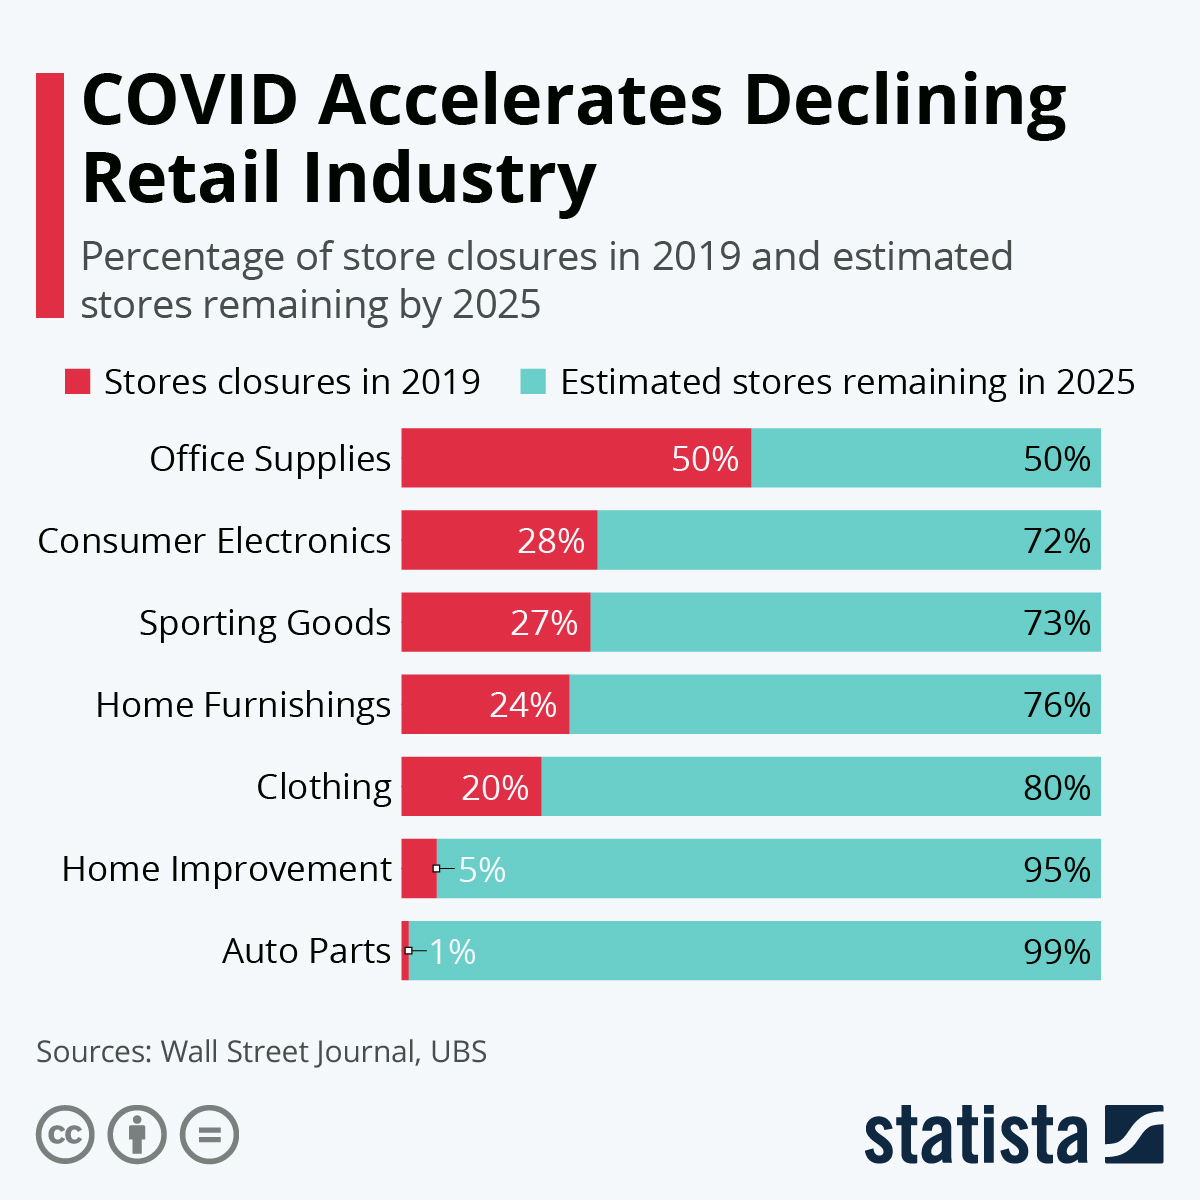 Statistics on how Covid accelerates declining retail industry